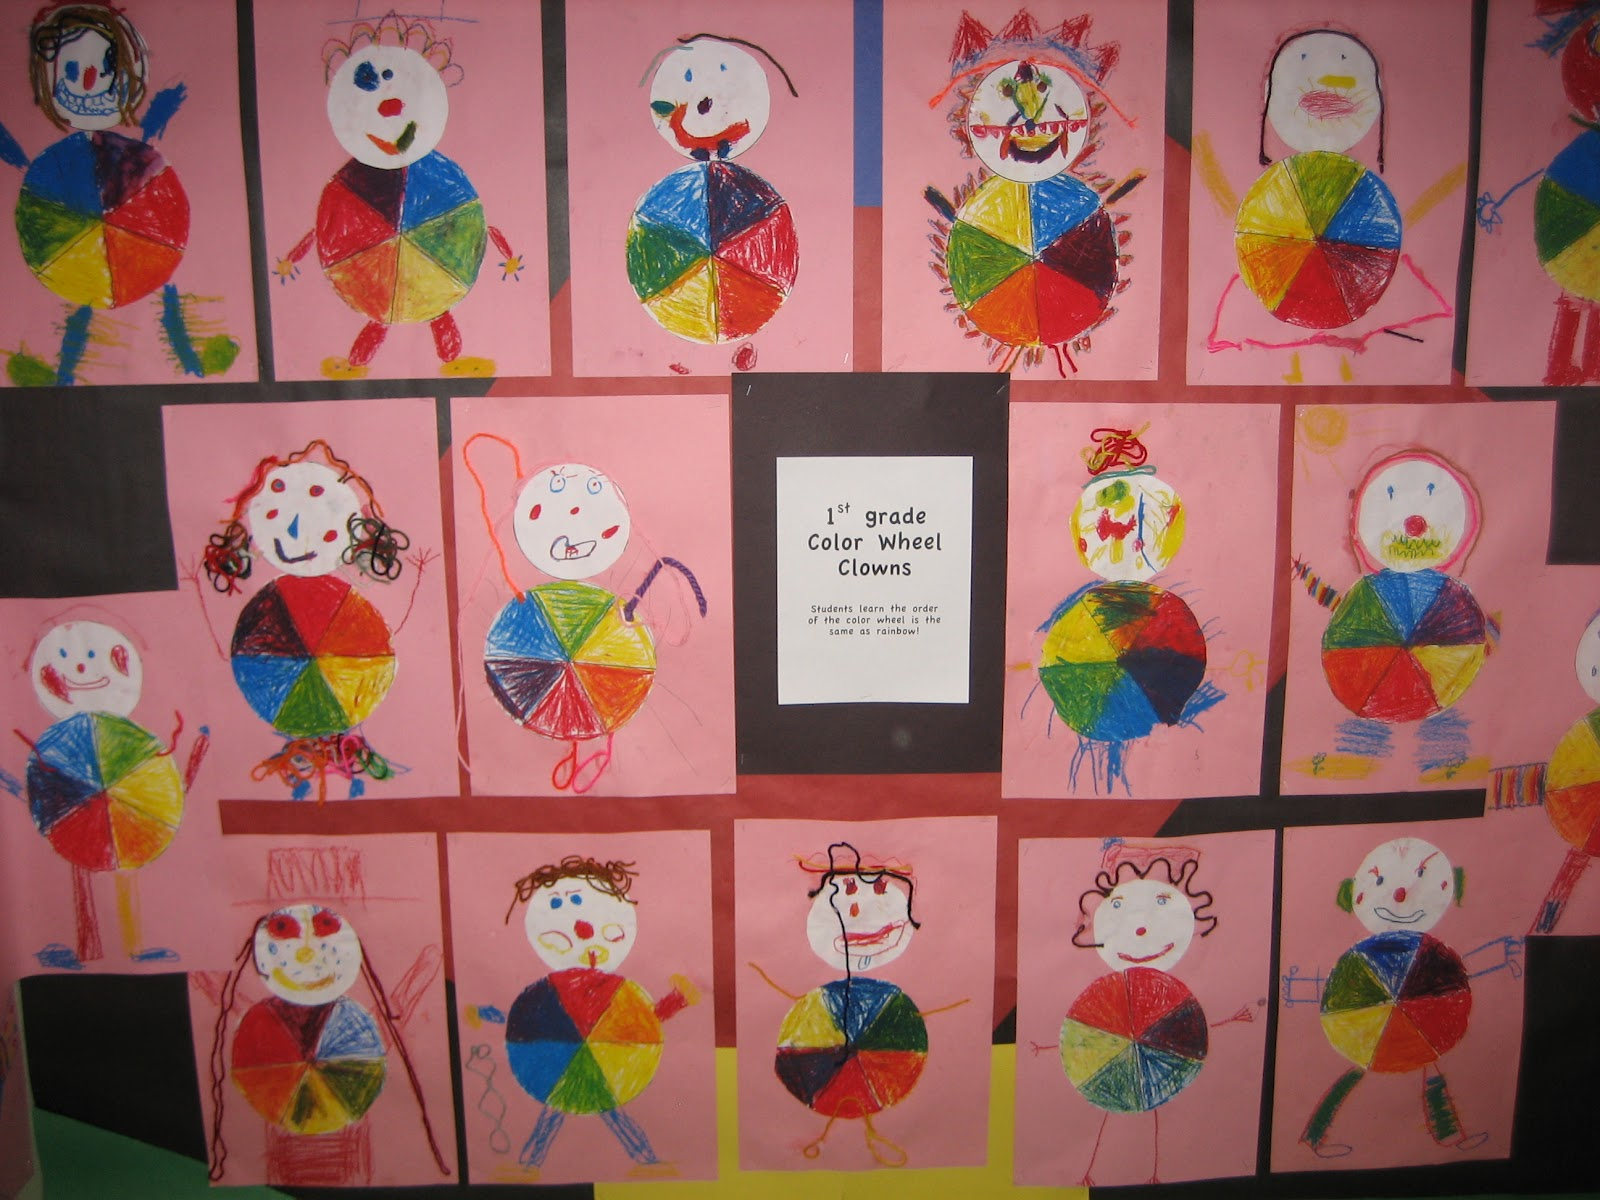 Color wheel art projects for kids - 1st Grade Color Wheel Clowns